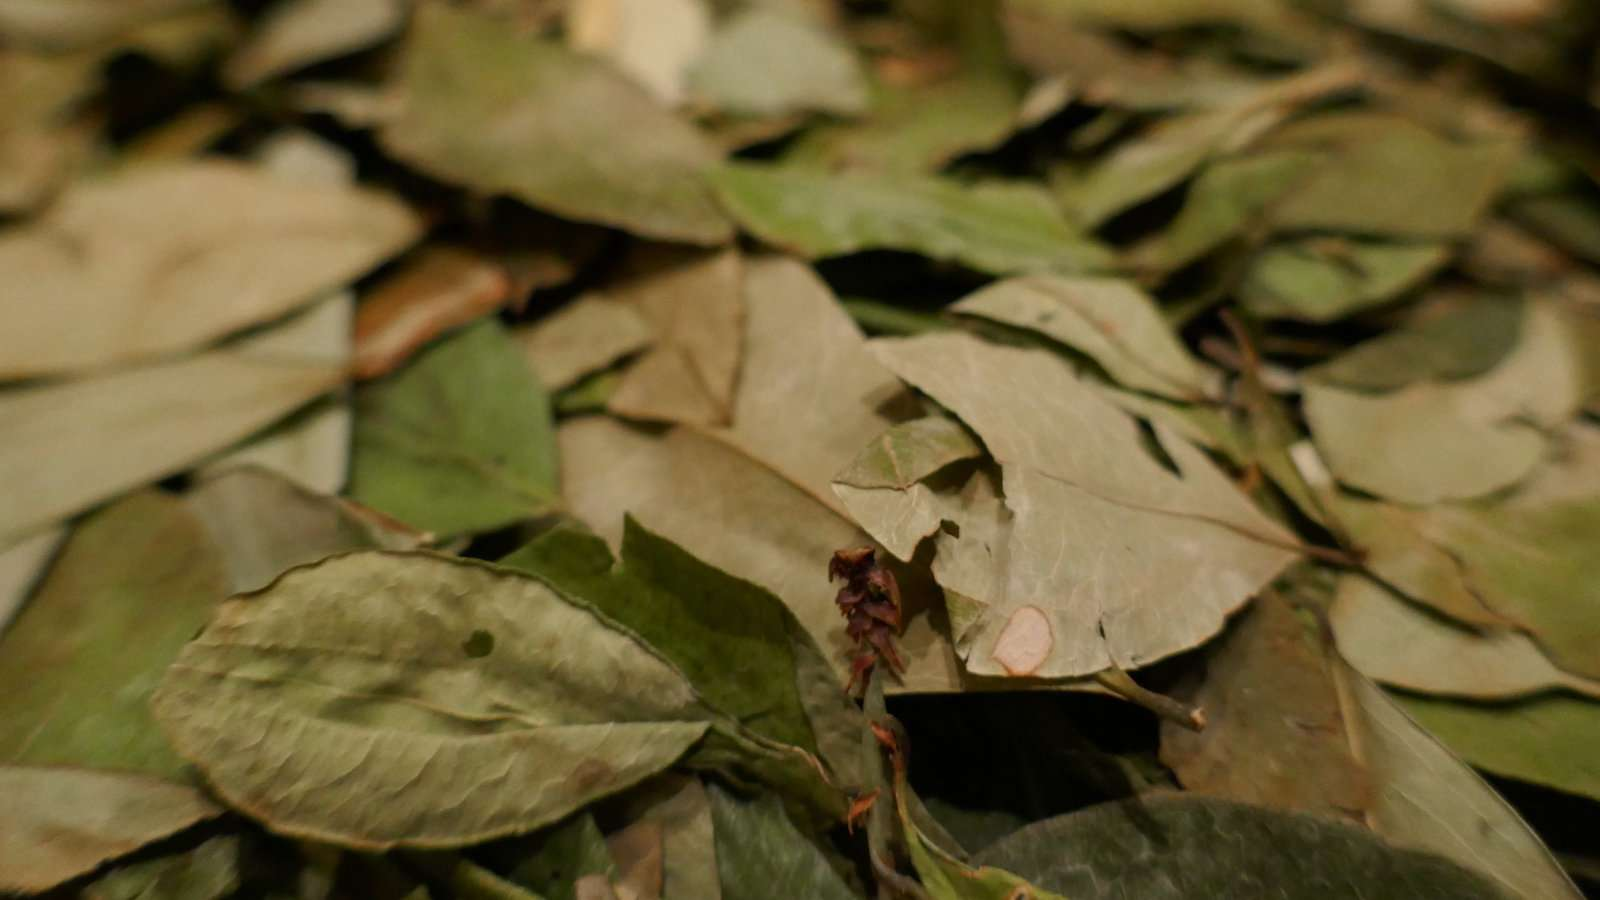 Coca leaves might be where cocaine comes from but the leaves themselves are good for you